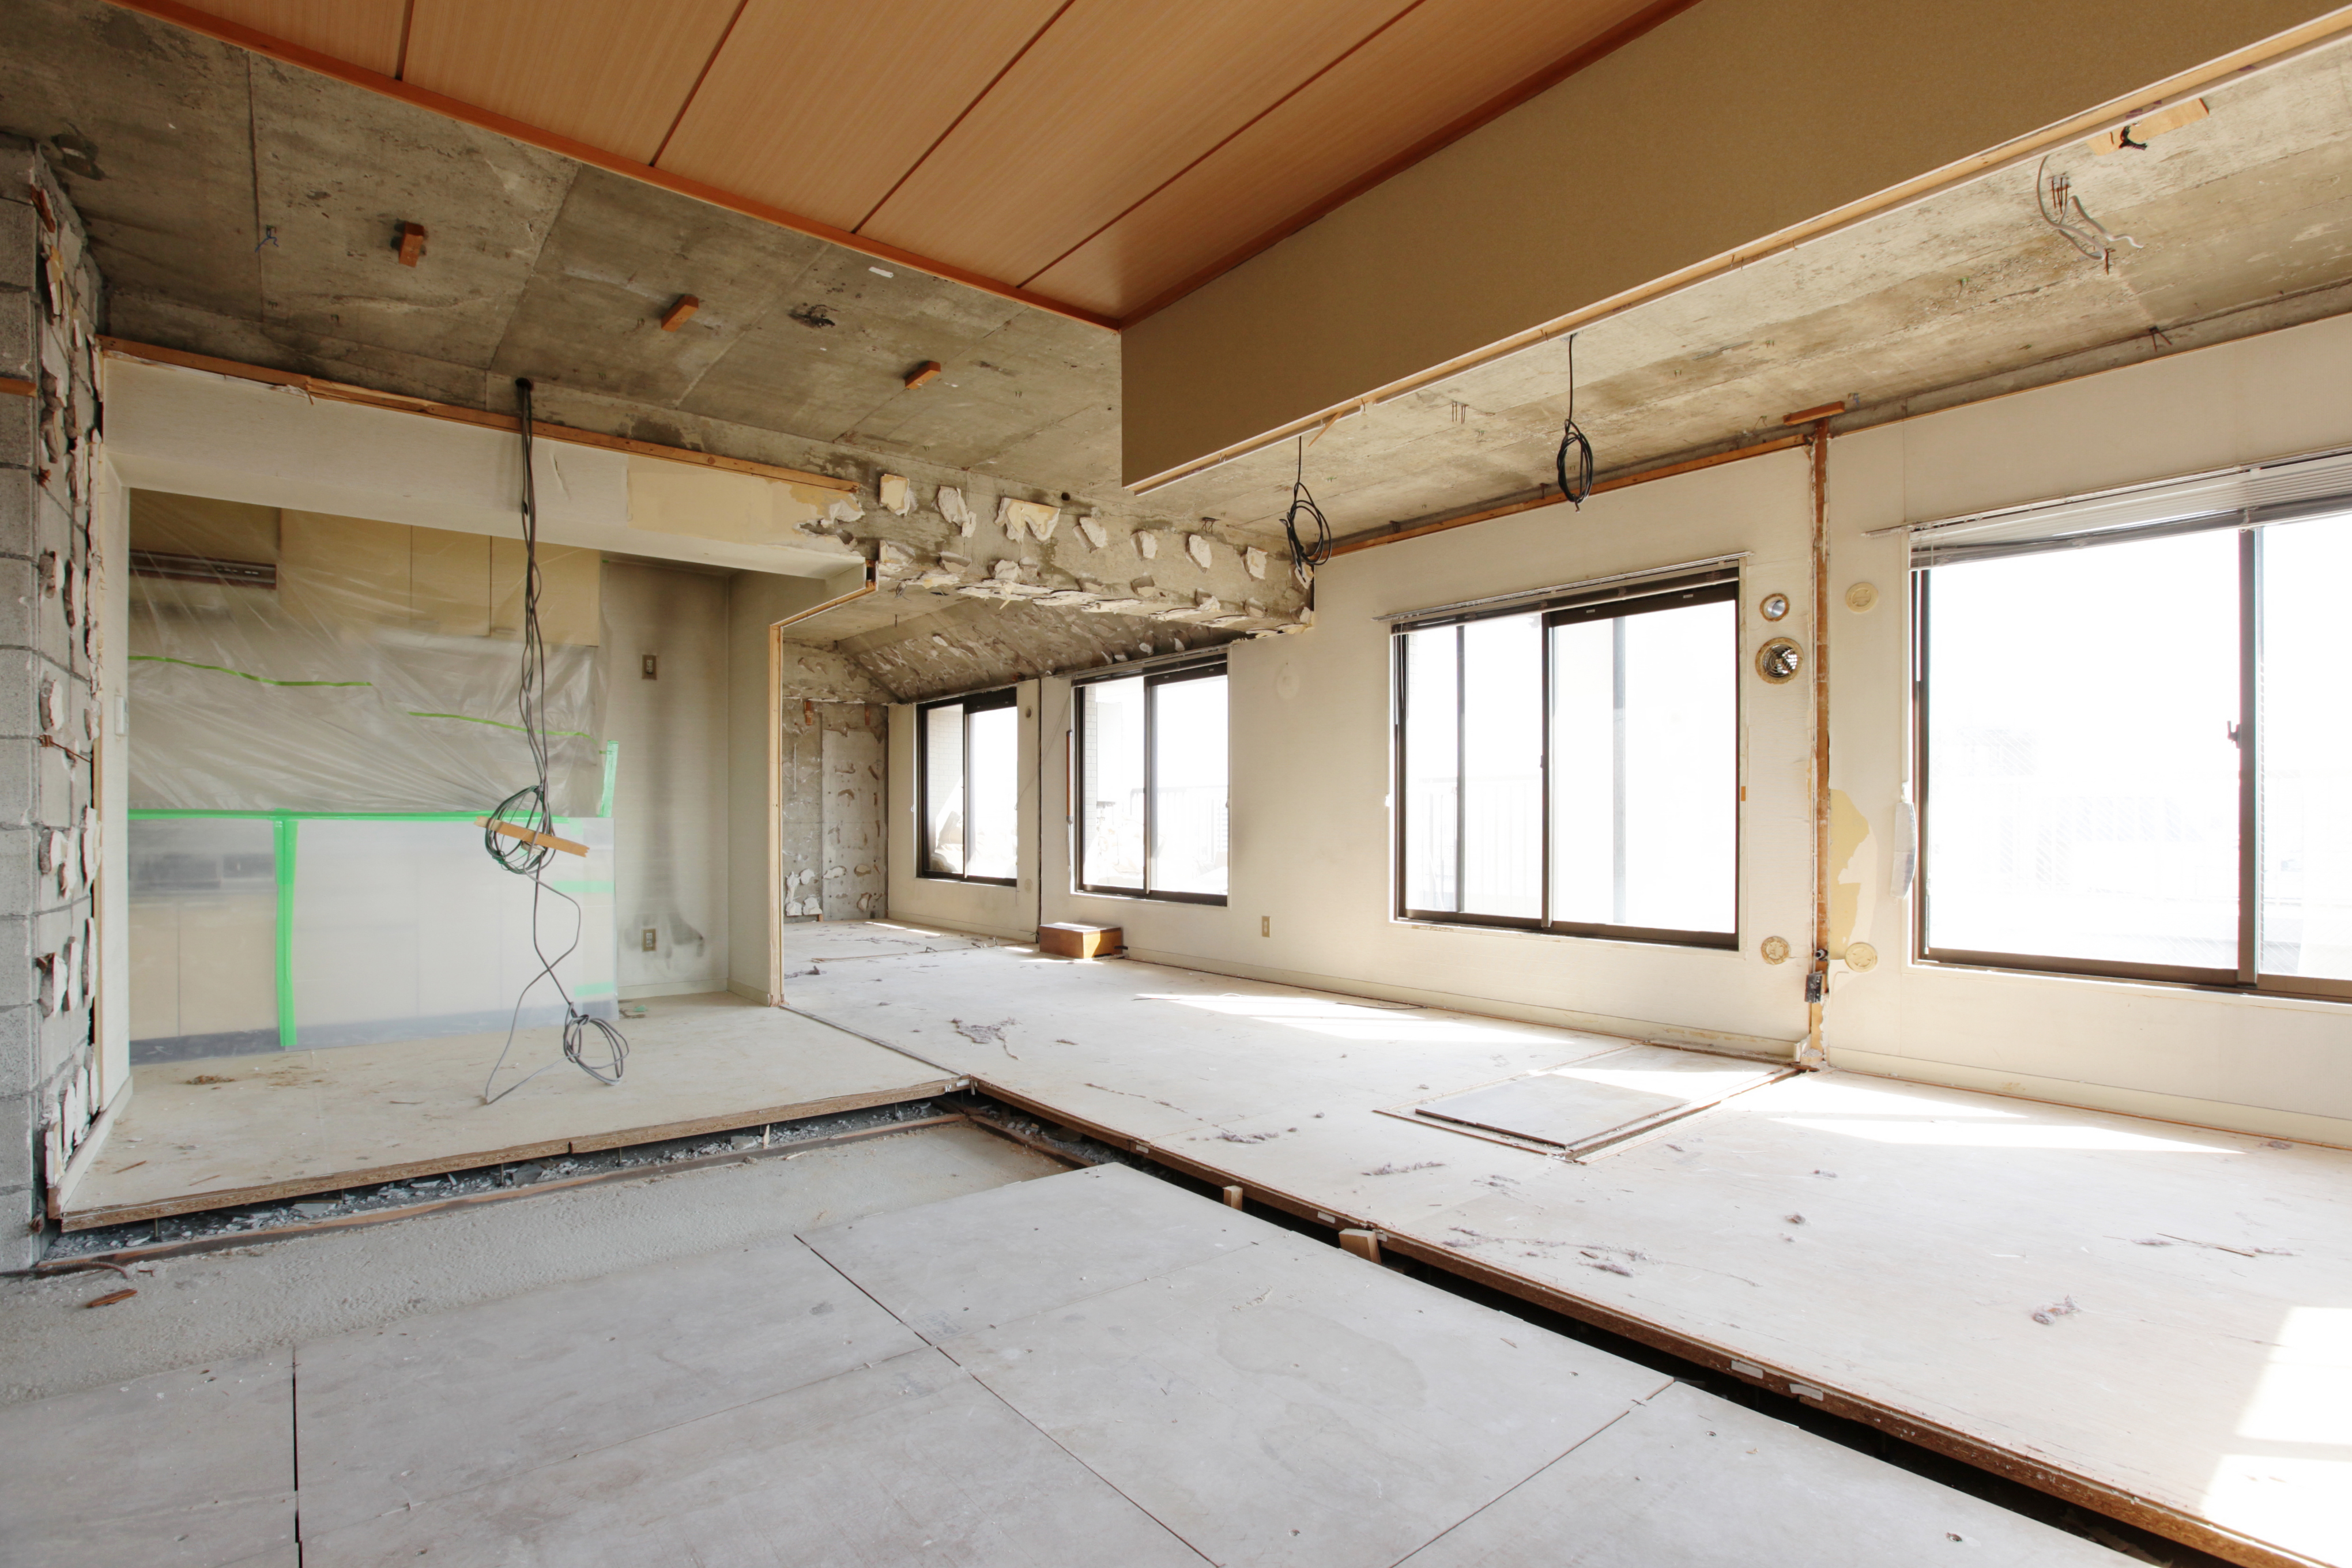 Being renovated house